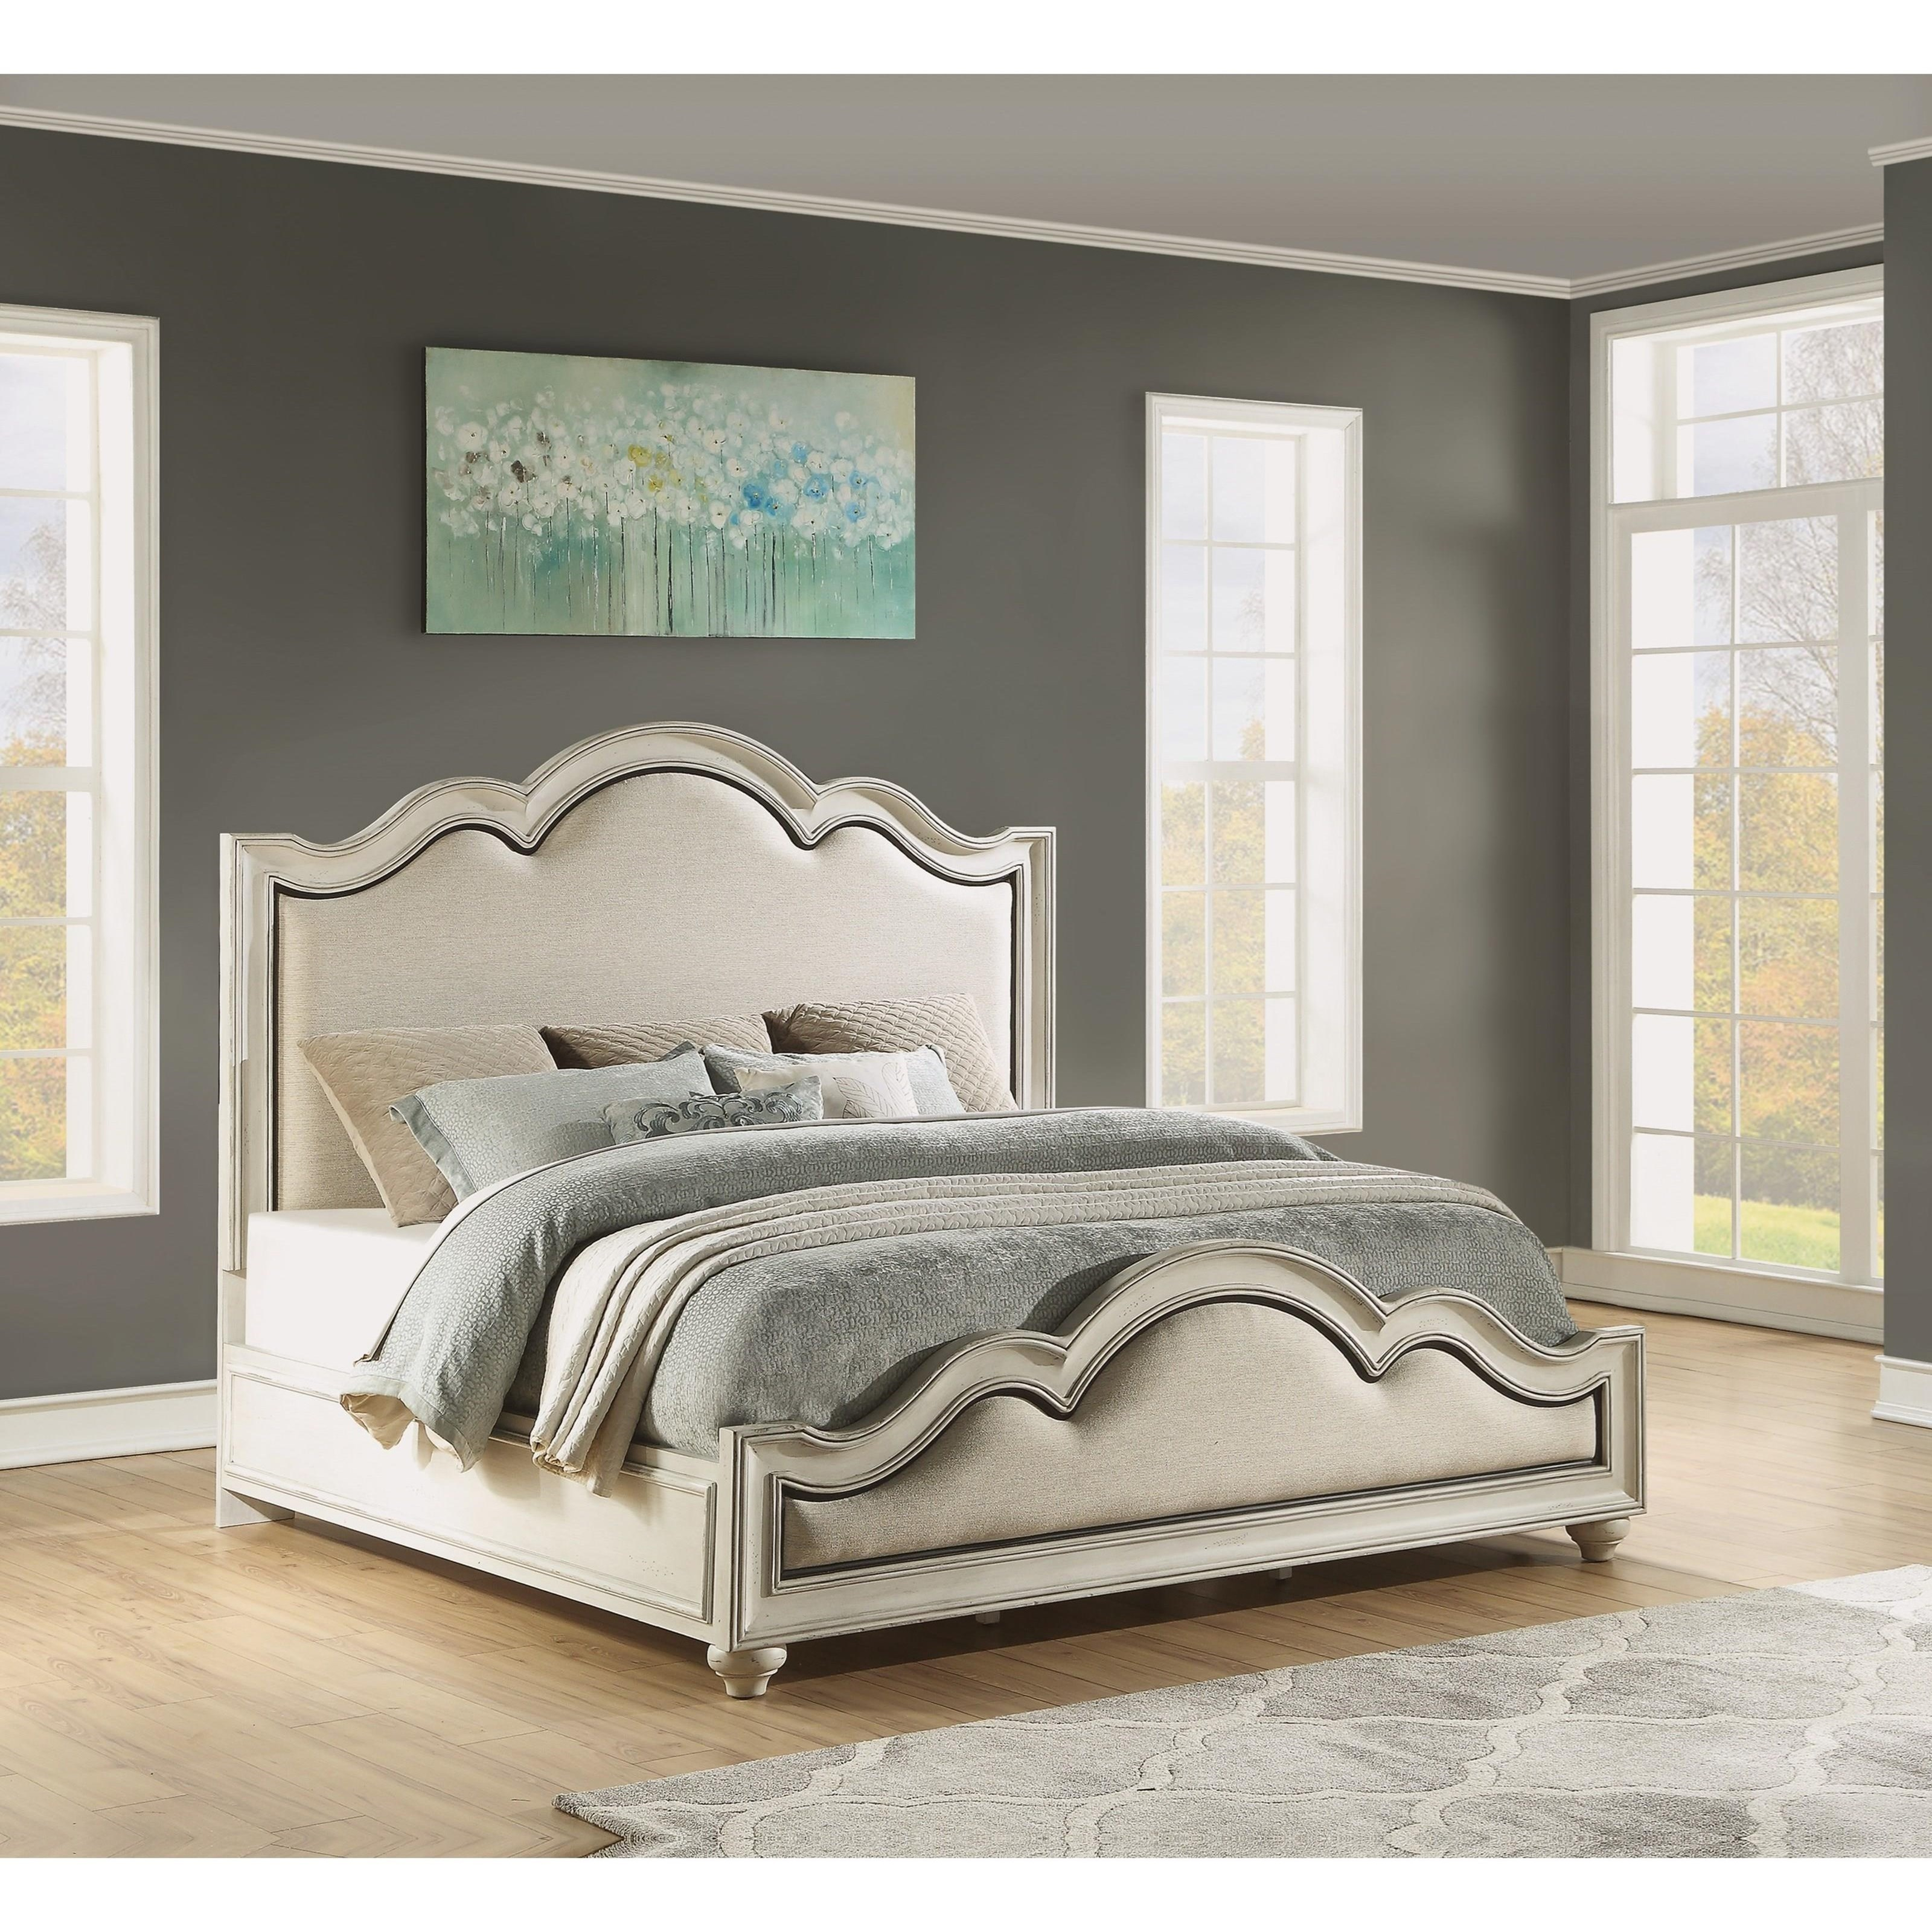 Windsong Queen Upholstered Bed by Flexsteel at Crowley Furniture & Mattress